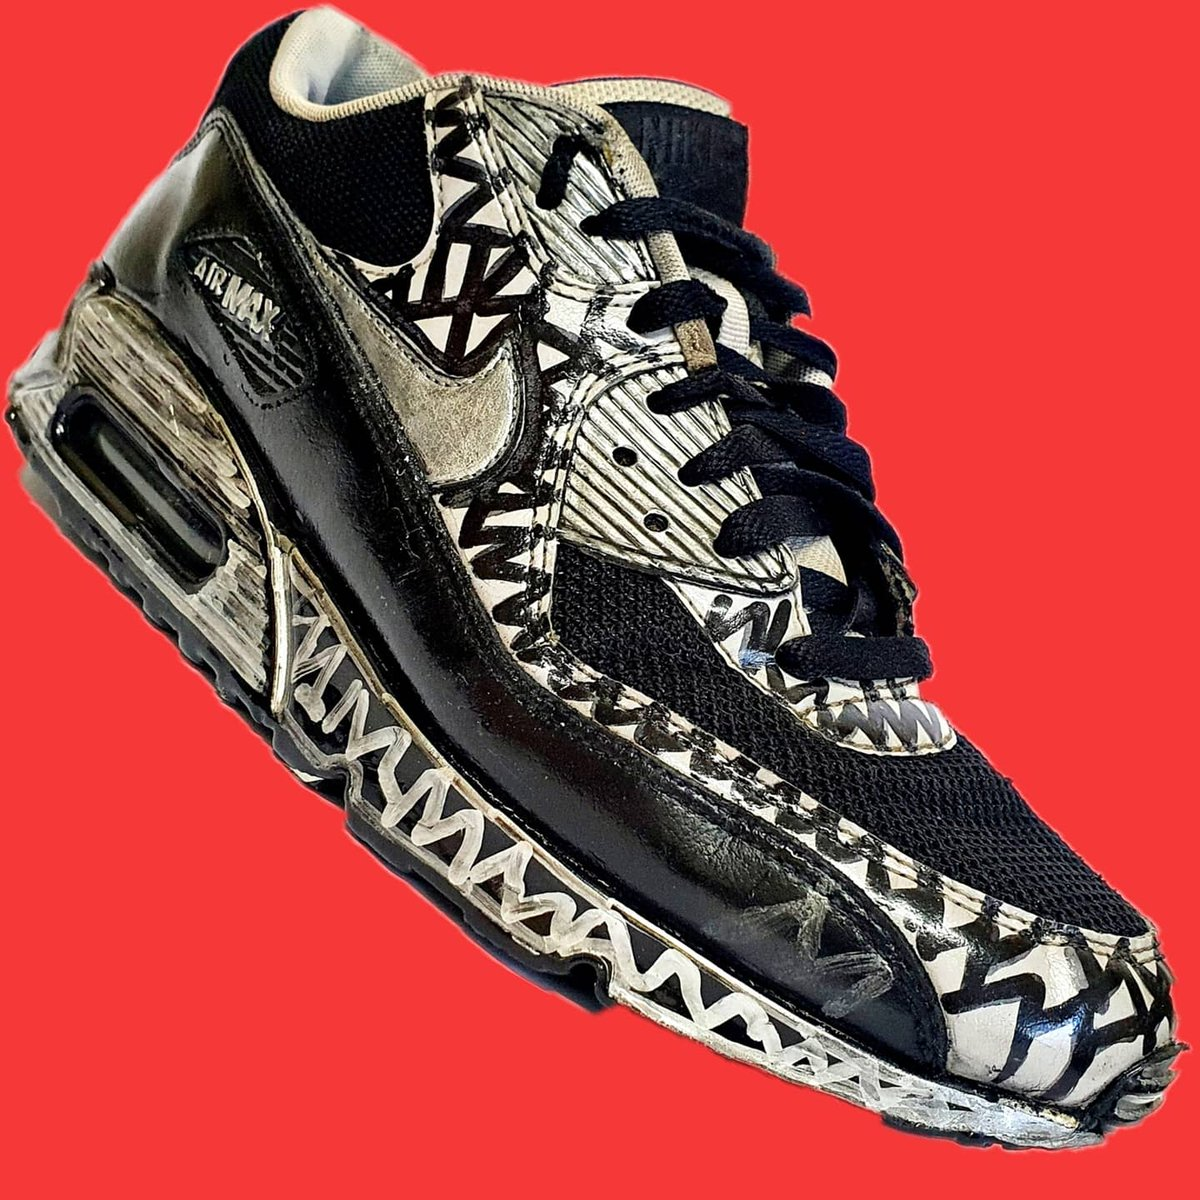 Nike Air Max 90 ( Custome ) . #customsneakers  #mj #air #airforce #jordan  #nike #Art #artist #disagne #popart #gallery #stunning #modernabstract #modernarr #air #stunning #fashion #trend #no1 #photo #photooftheday #kicks #kickstagram  #customshoe #airmax #NIKE #stayhome #nike90